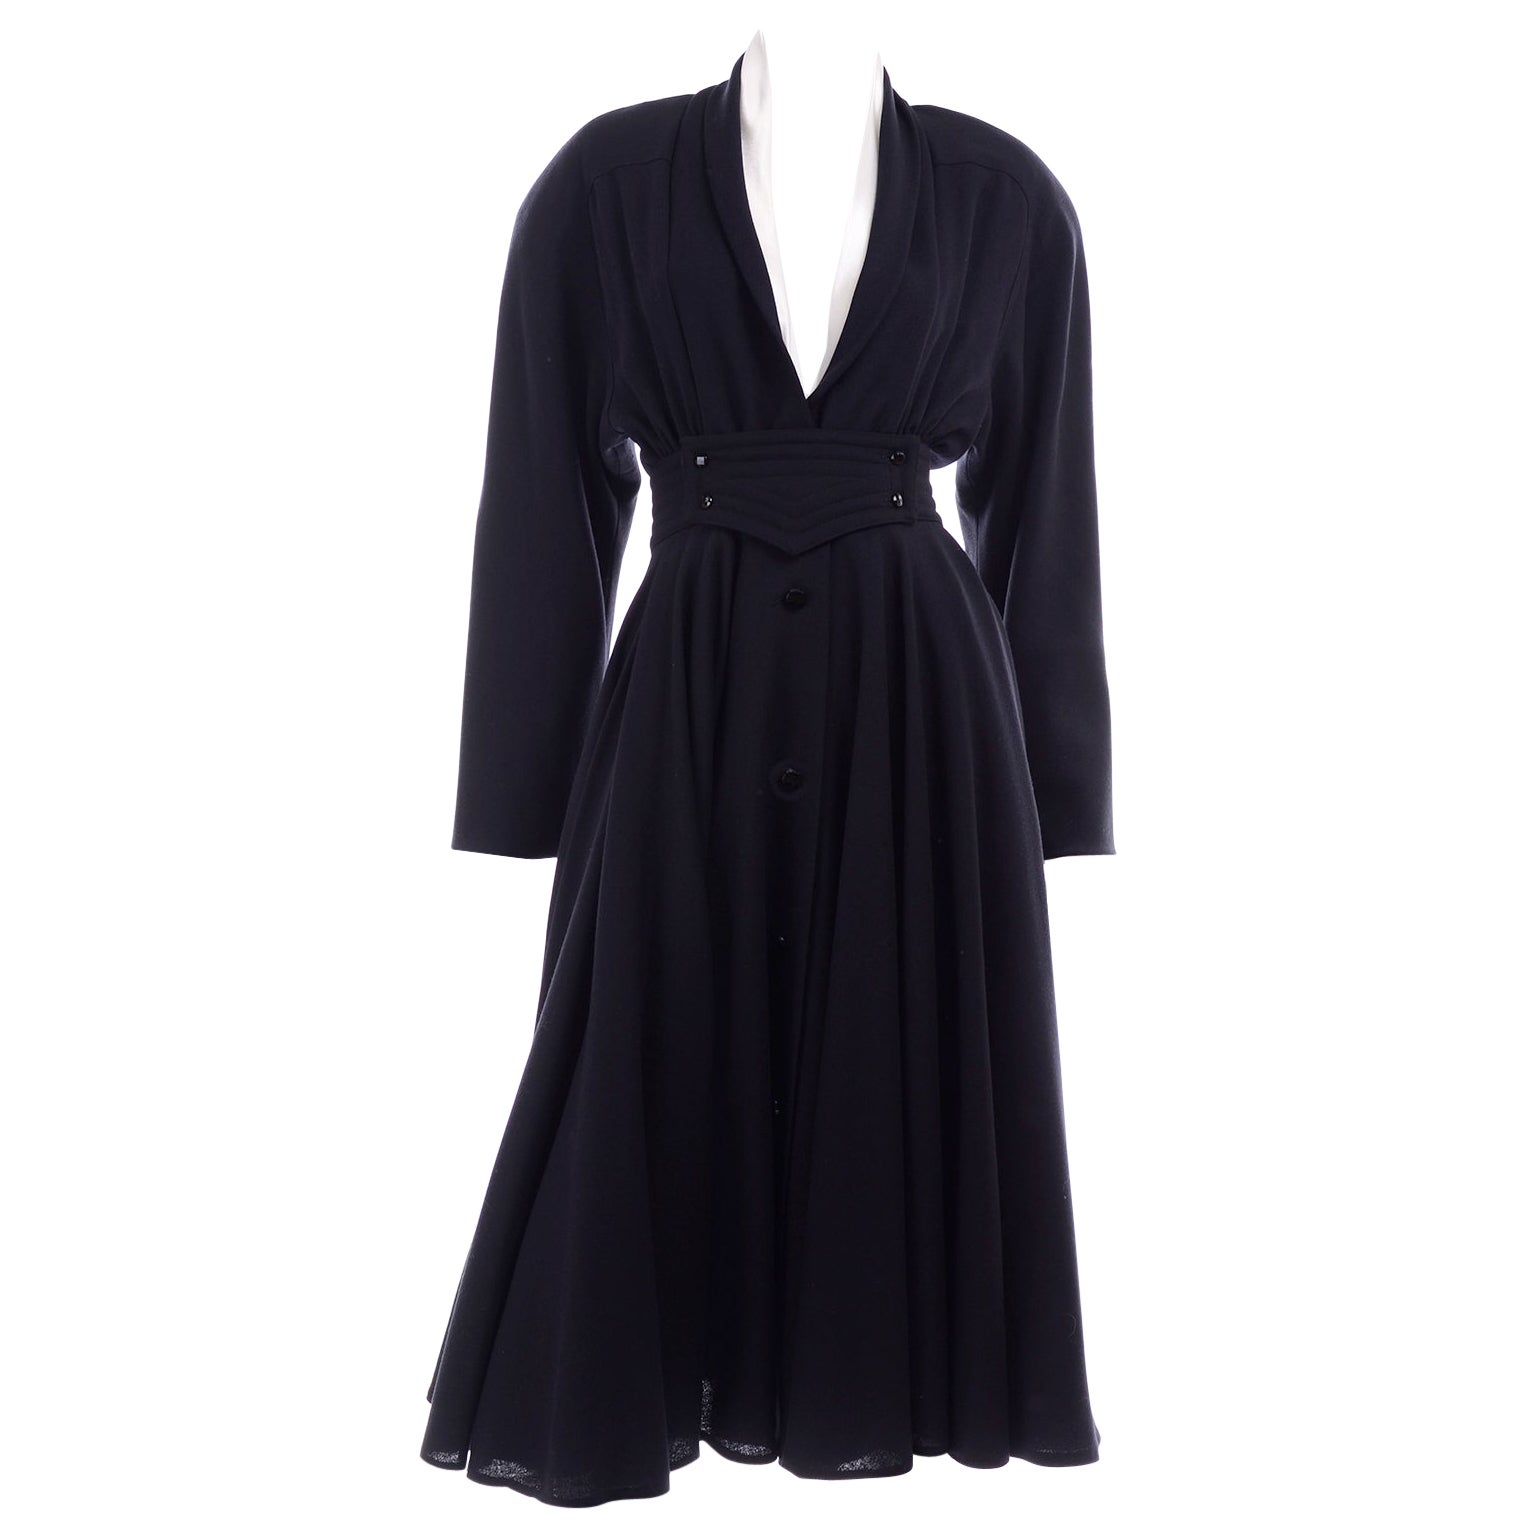 Deadstock Wayne Clark Couture Vintage Wool 1980s Dress New With Original Tags